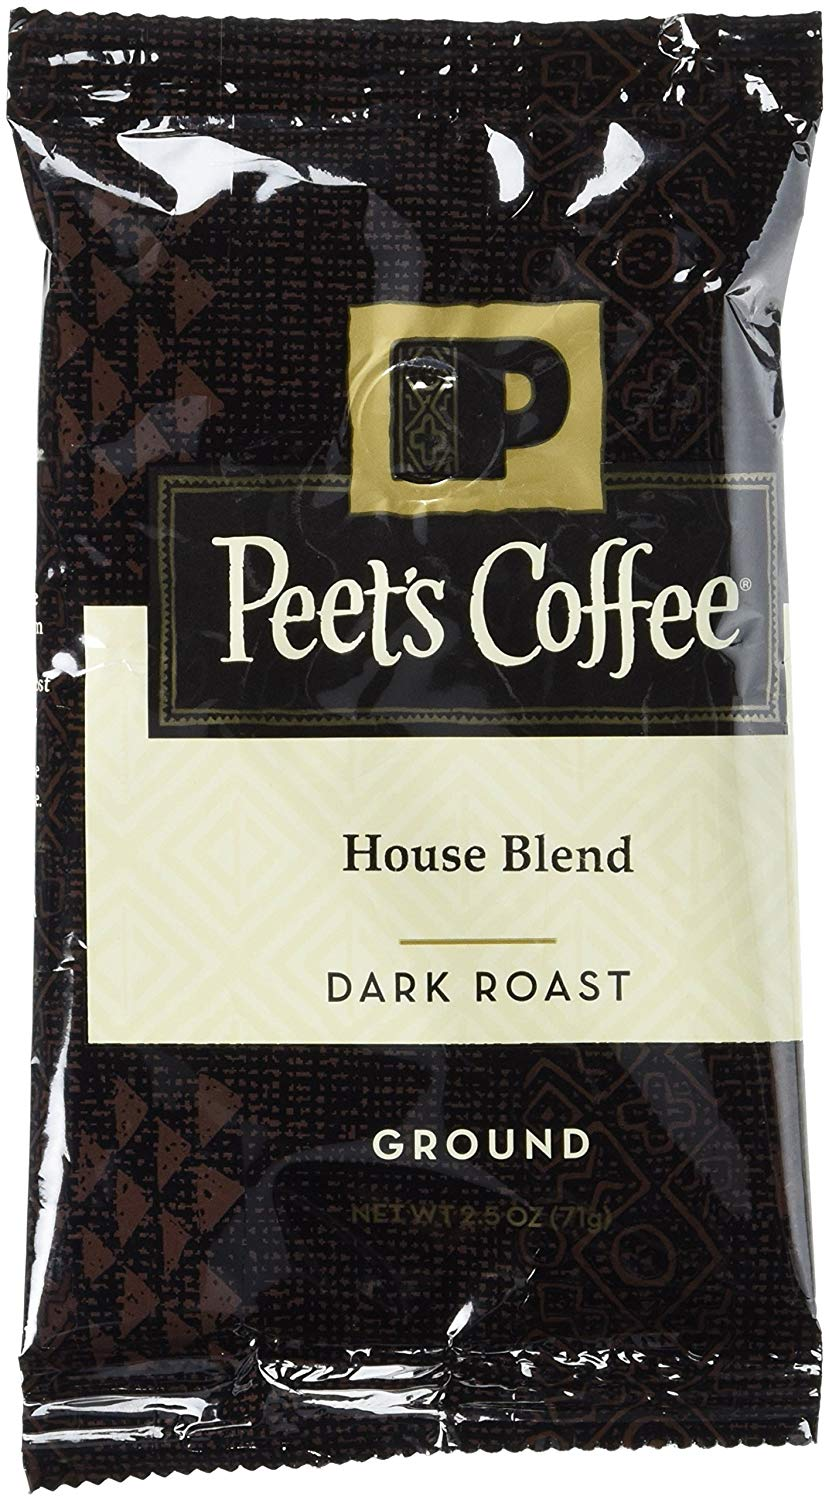 Peet's Coffee Ground Dark Roast Coffee, House Blend, 2.5 Ounce Portion Packs (Pack of 18) Bright, Lively, and Balanced Dark Roast Blend of Latin American Coffees, Deep Roasted, Hint of Spice